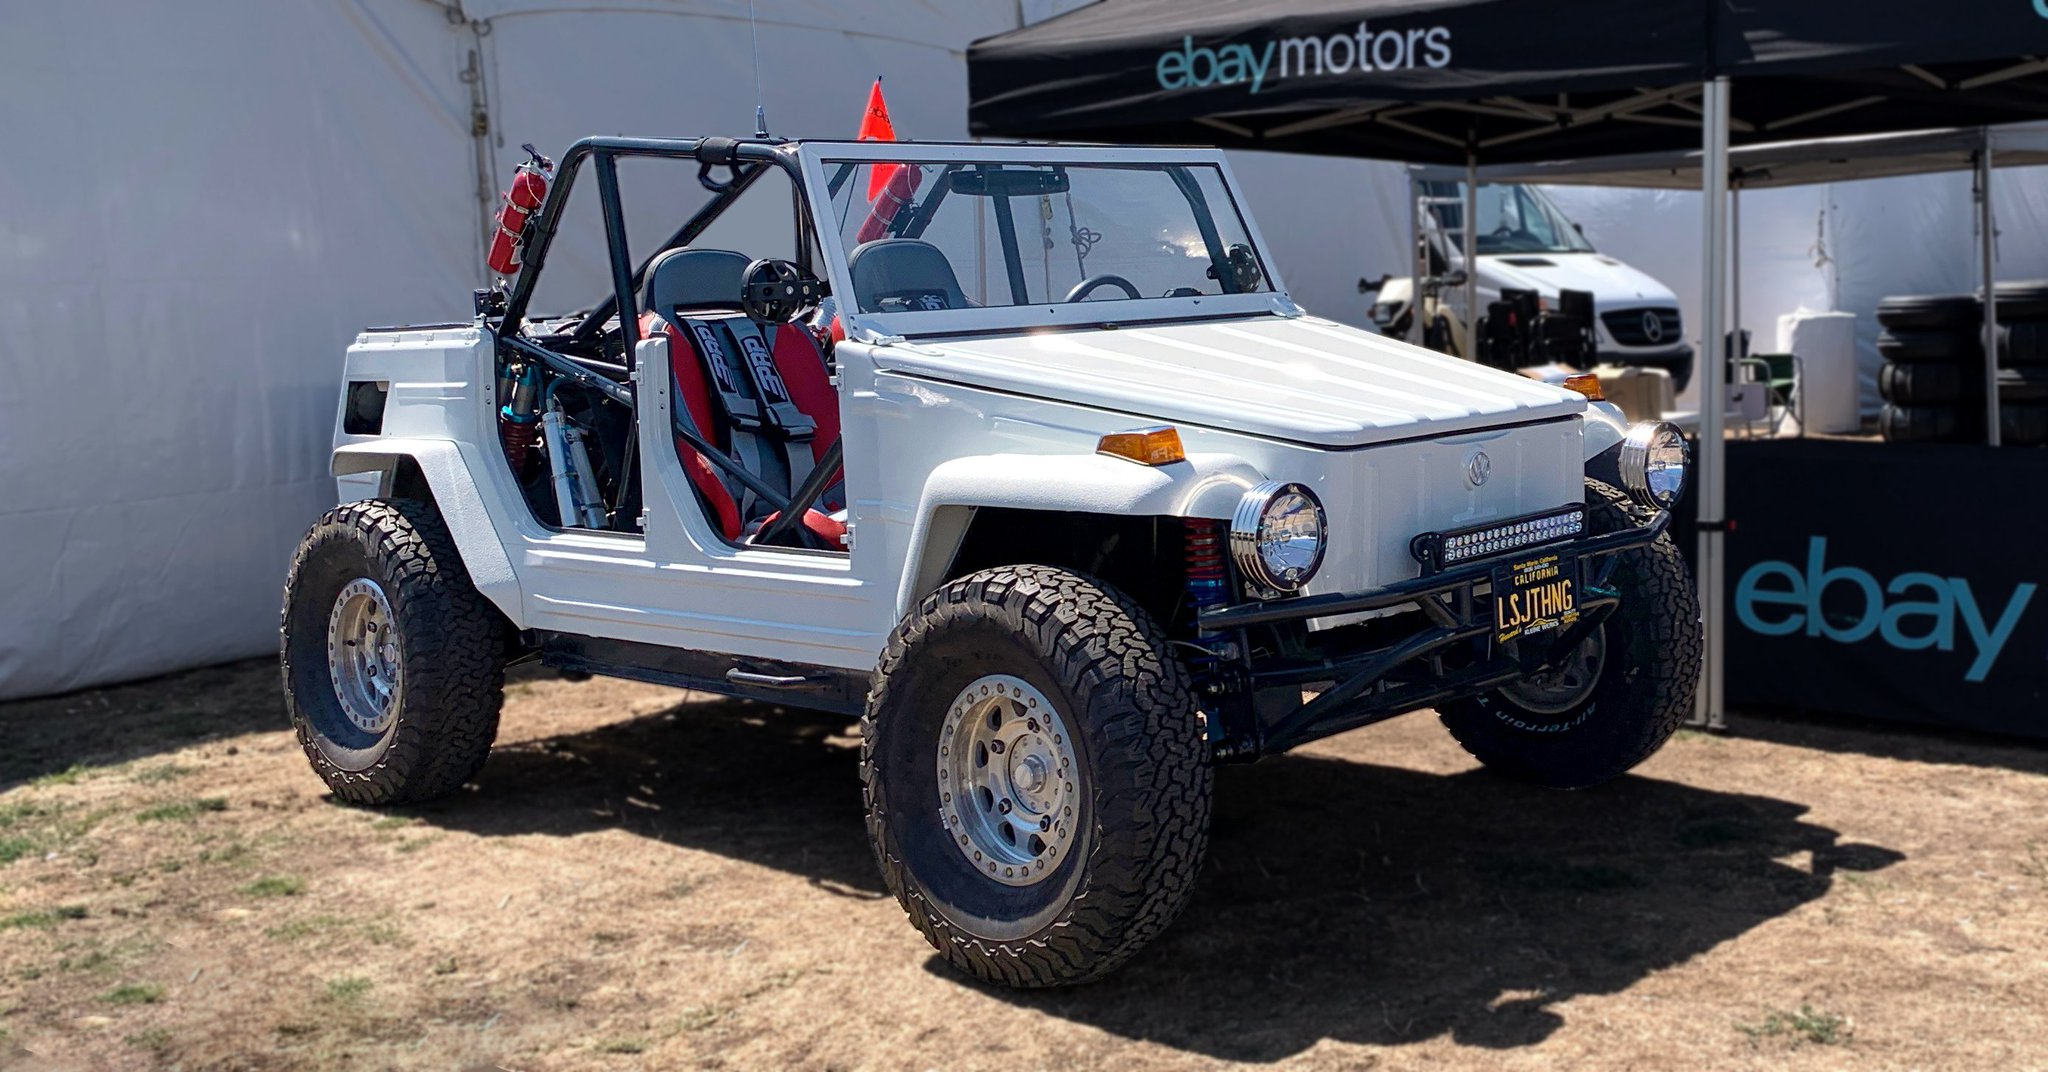 Ebay On Twitter Ebaymotors Is Onsite At The Sandsportss In Costa Mesa Ca This Weekend Stop By Booth Os 916 To Talk Sandsports Get Swag And See A Custom 1974 Vw Thing Restored